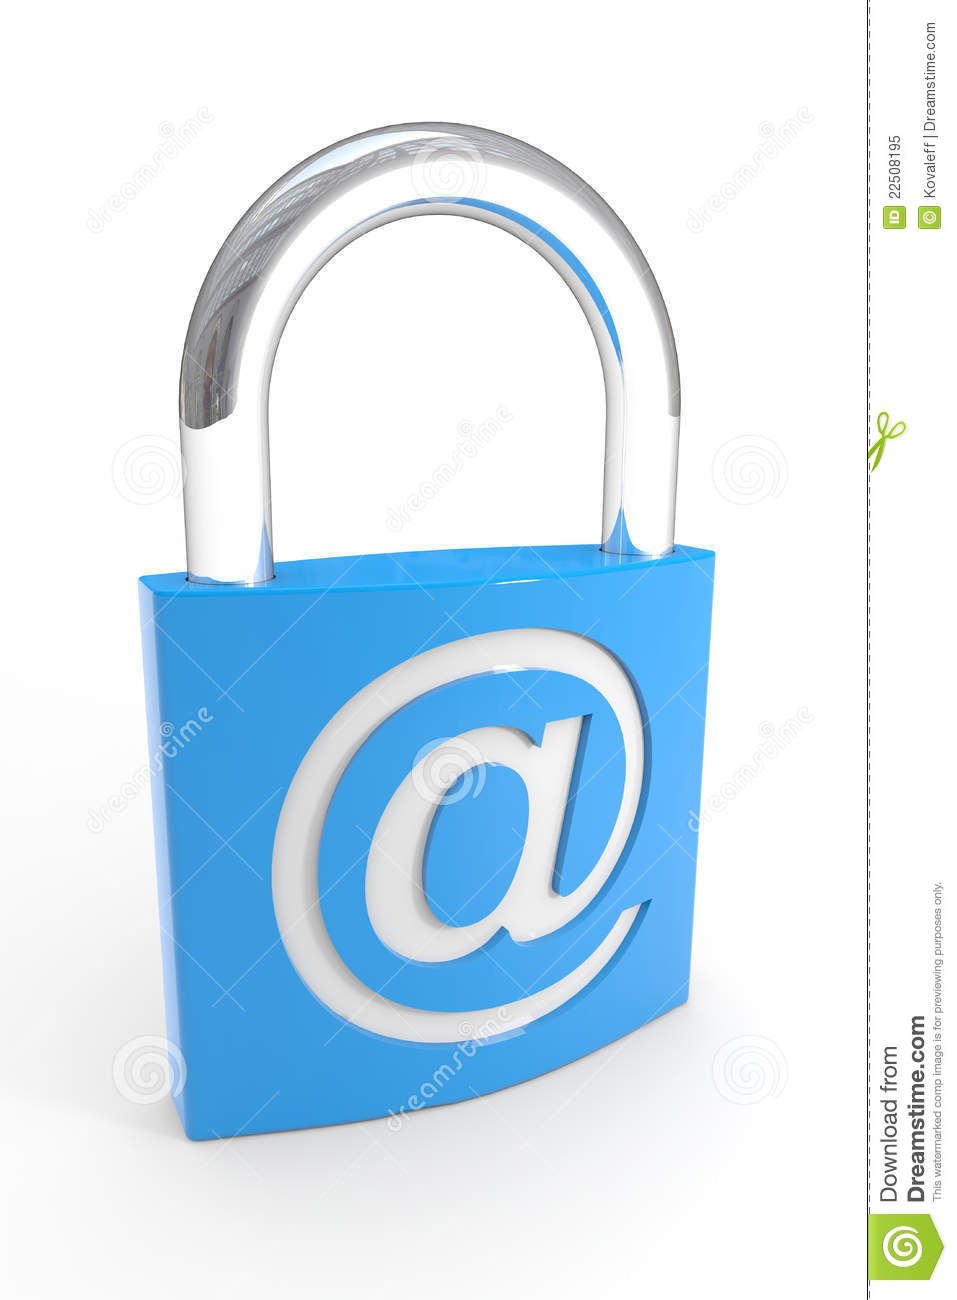 Padlock with e mail symbol internet safety stock illustration padlock with e mail symbol internet safety biocorpaavc